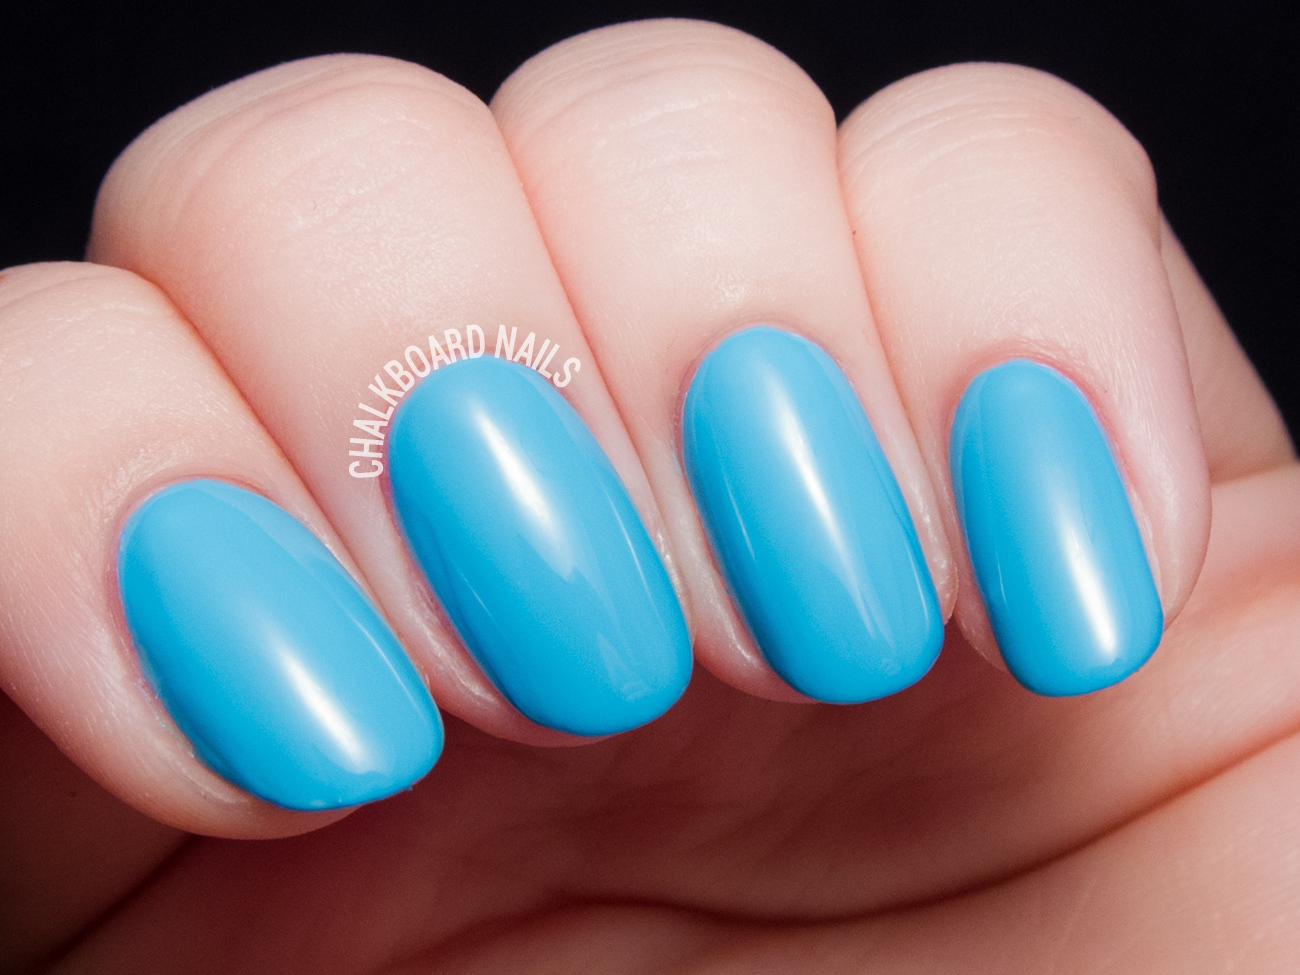 China Glaze UV Meant to Be via @chalkboardnails